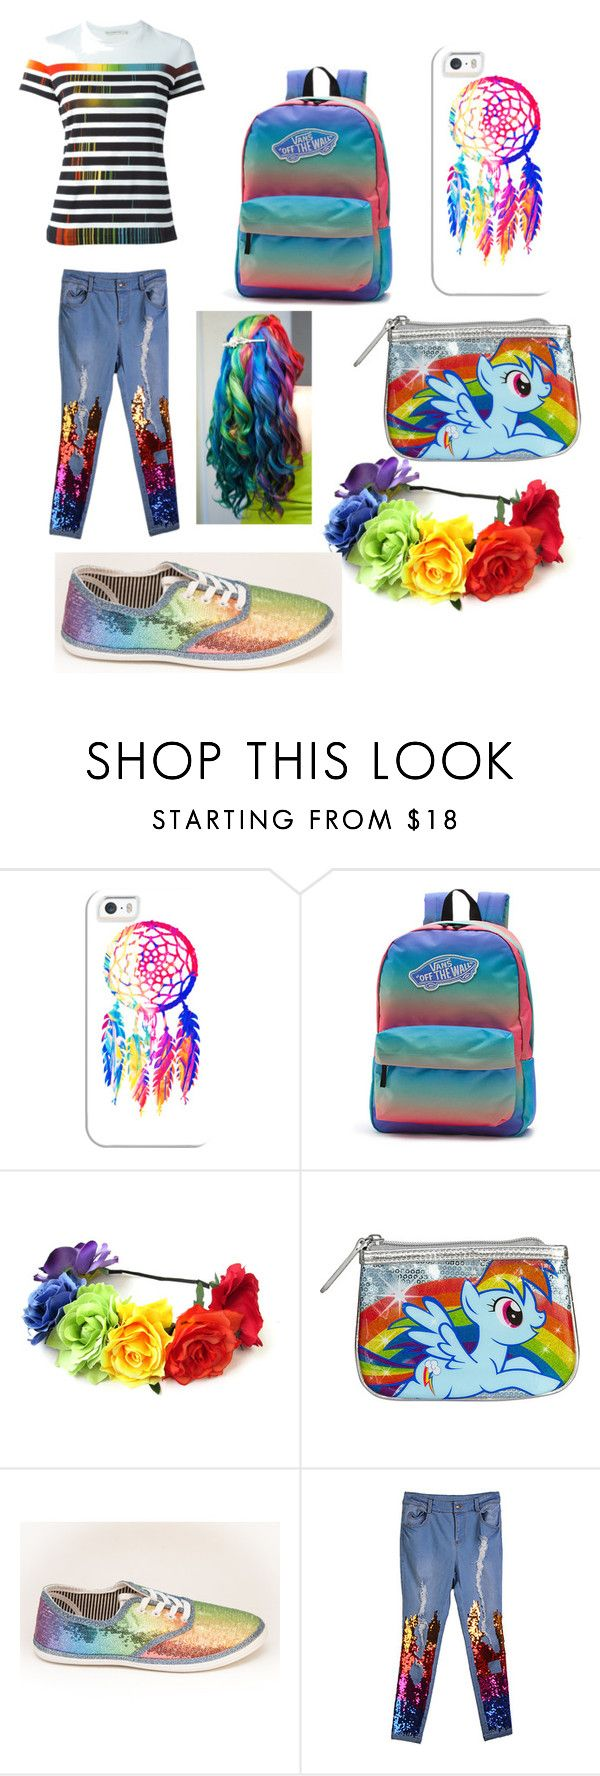 """dash of rainbow"" by babykaely ❤ liked on Polyvore featuring Casetify, Vans, Loungefly and Mary Katrantzou"